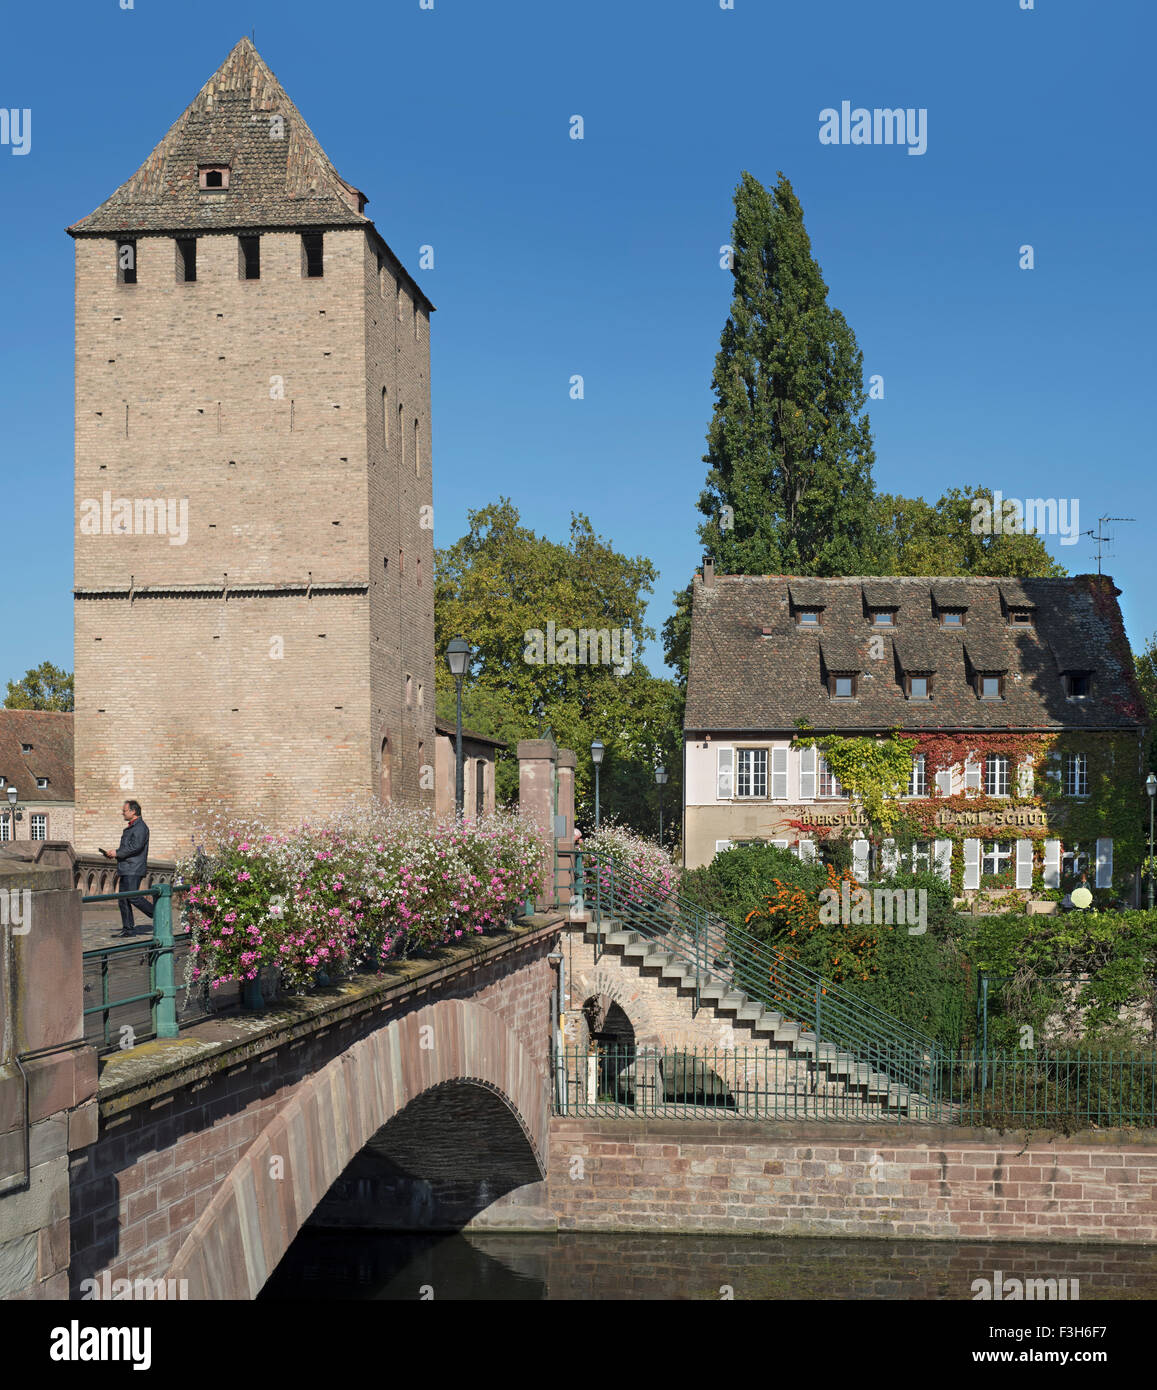 One of four towers of the medieval Ponts Couverts over the River Ill in the Petite France quarter at Strasbourg, - Stock Image